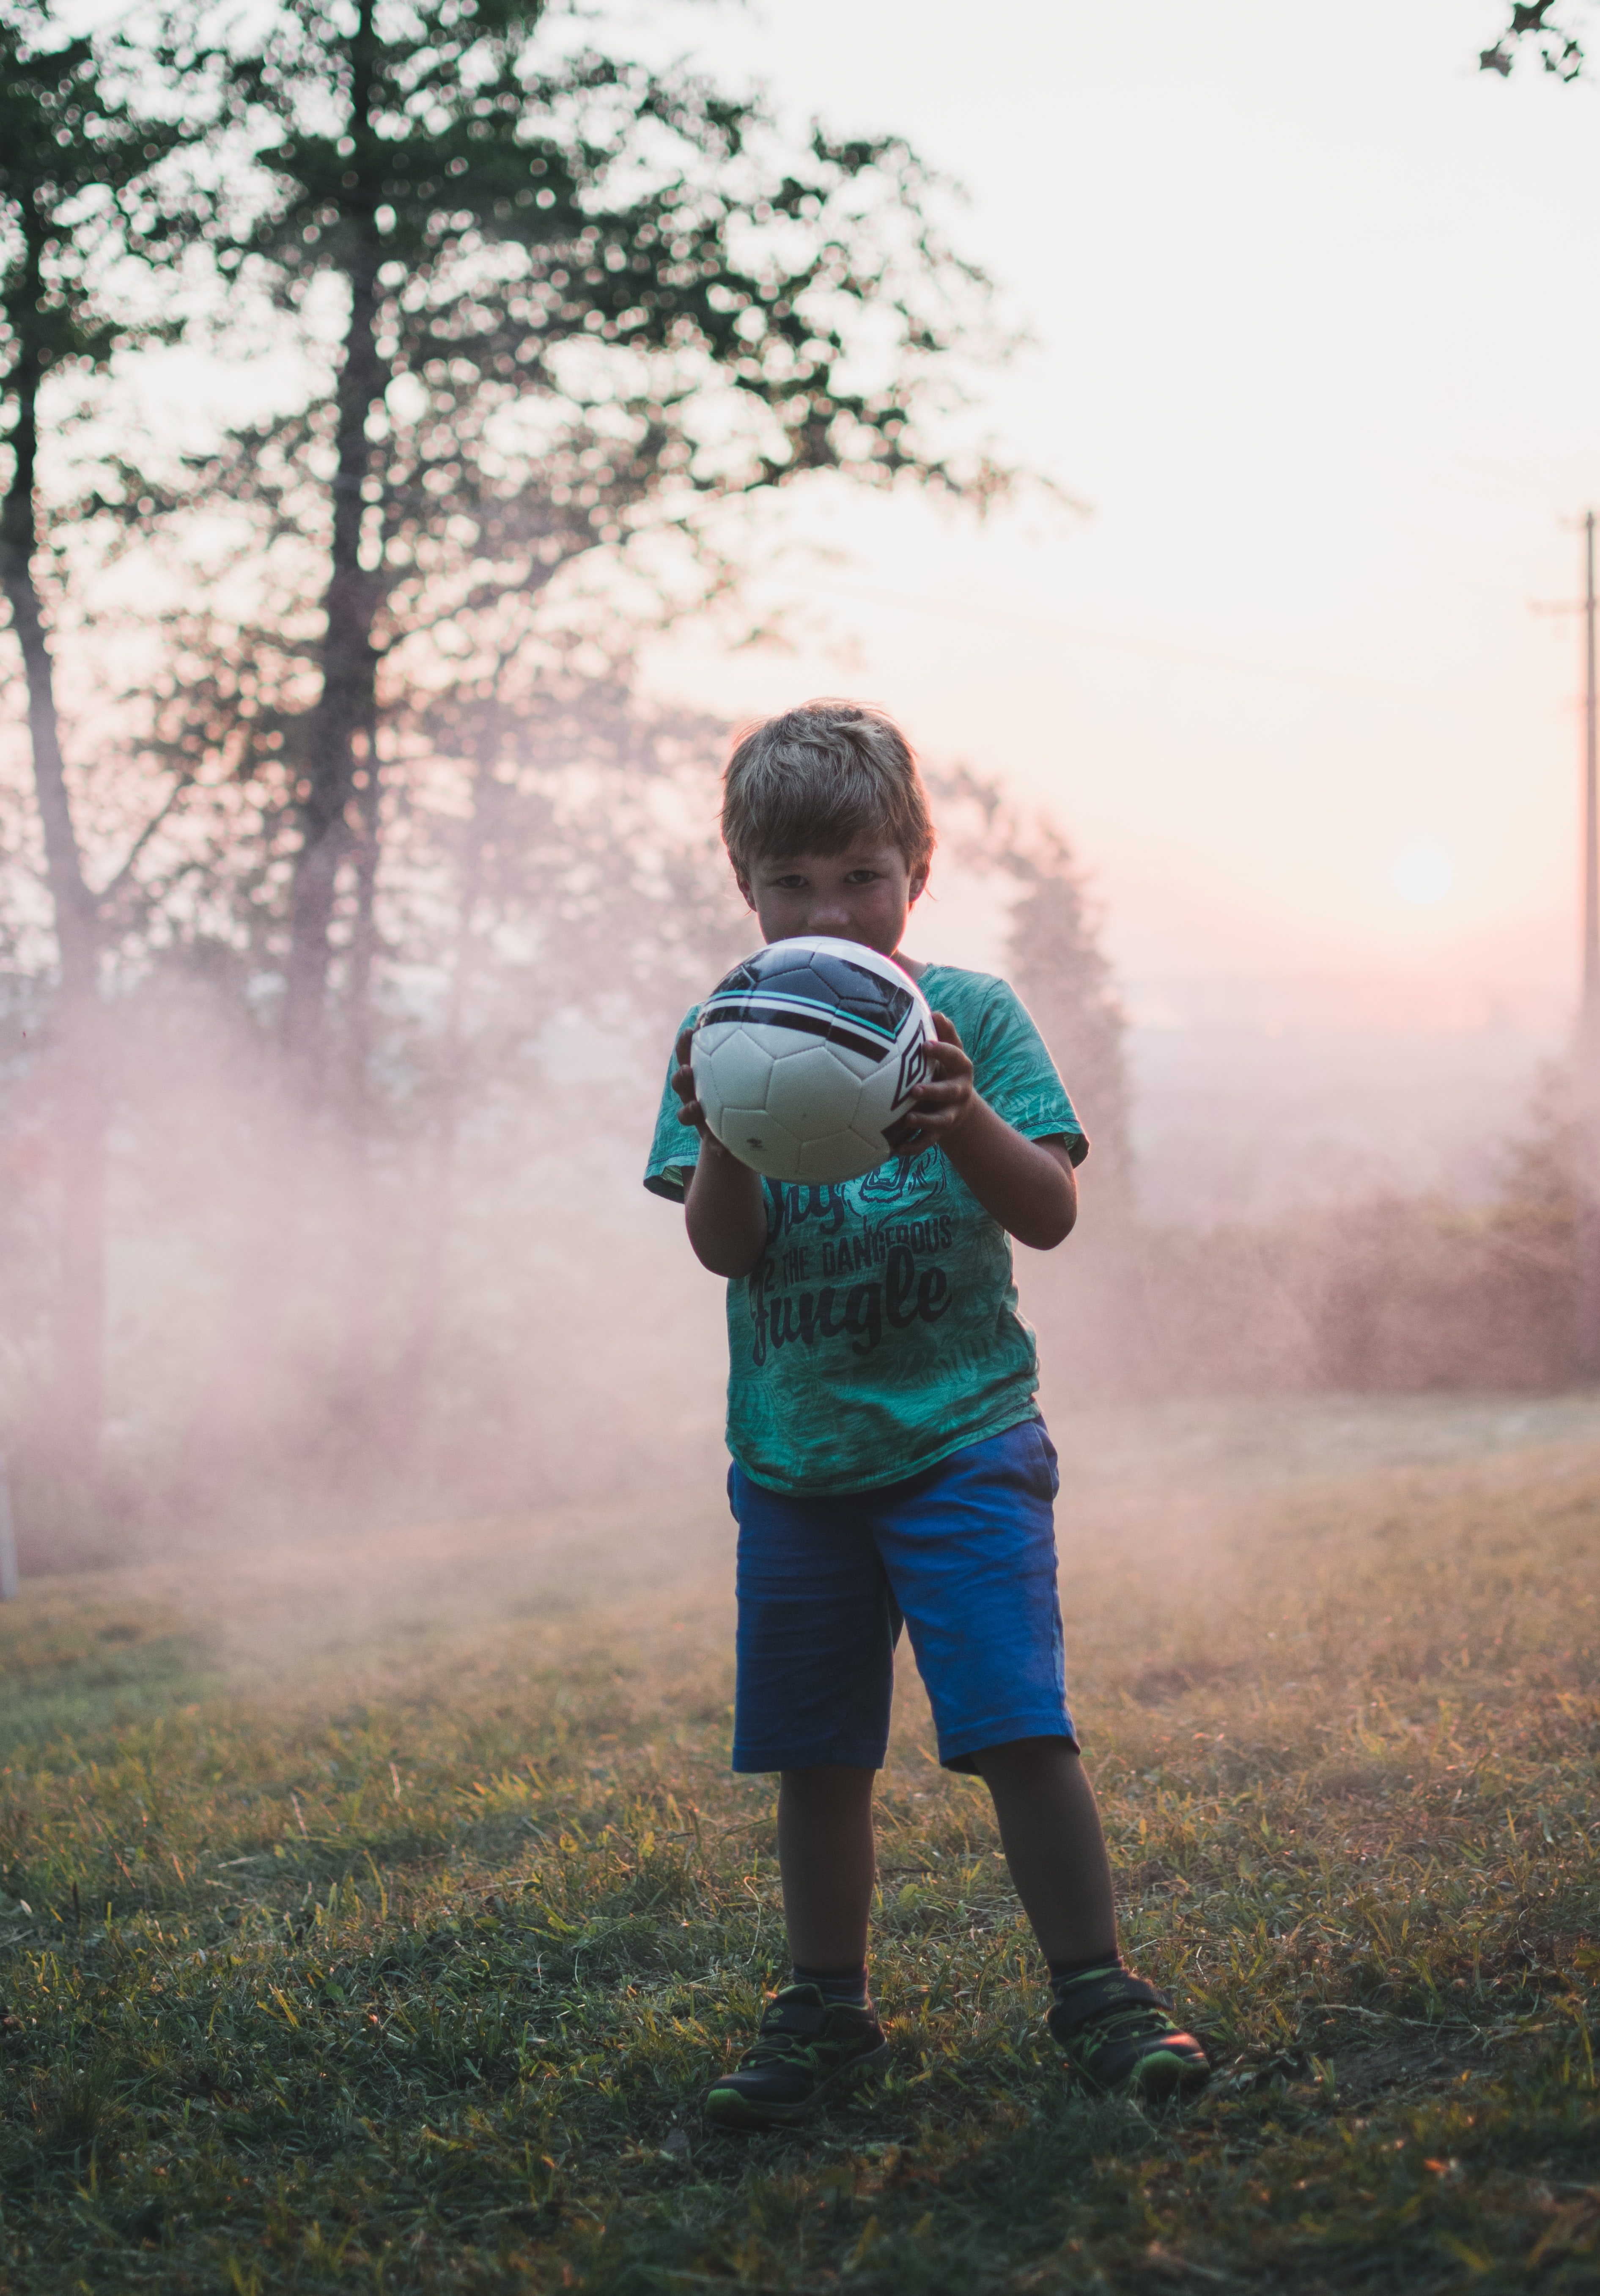 shallow focus photography of boy holding a ball